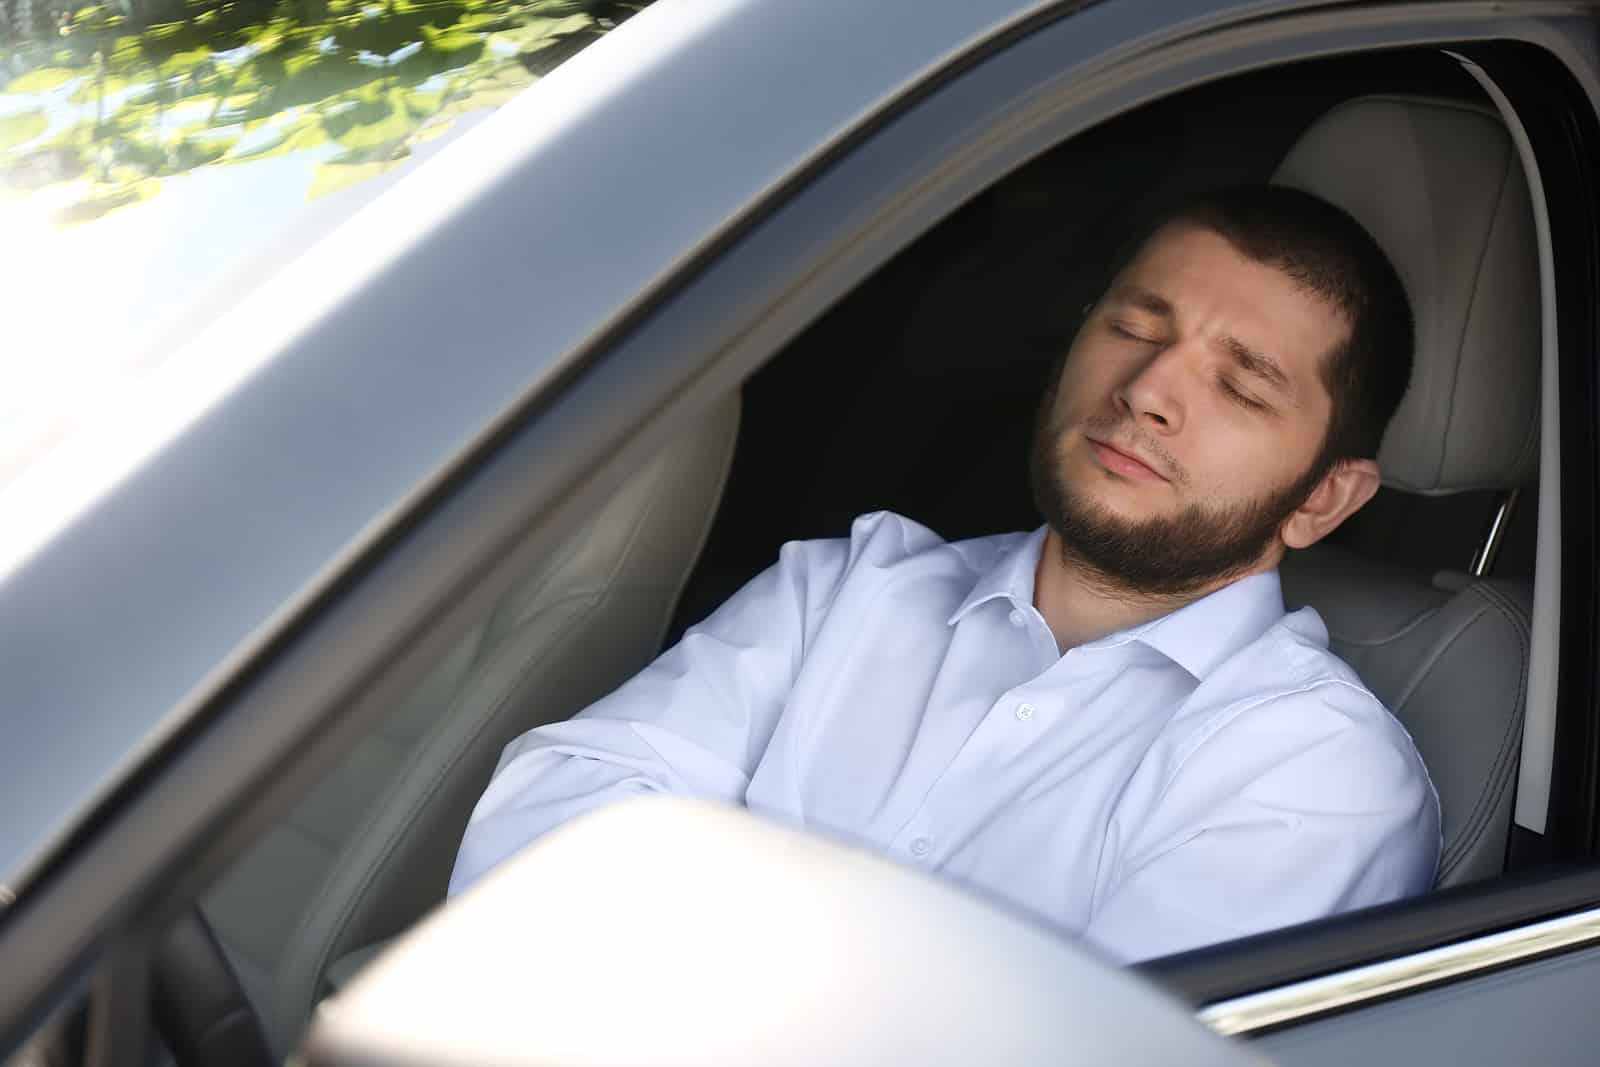 DUI Case Histories: Unusual Circumstances with Favorable Outcomes